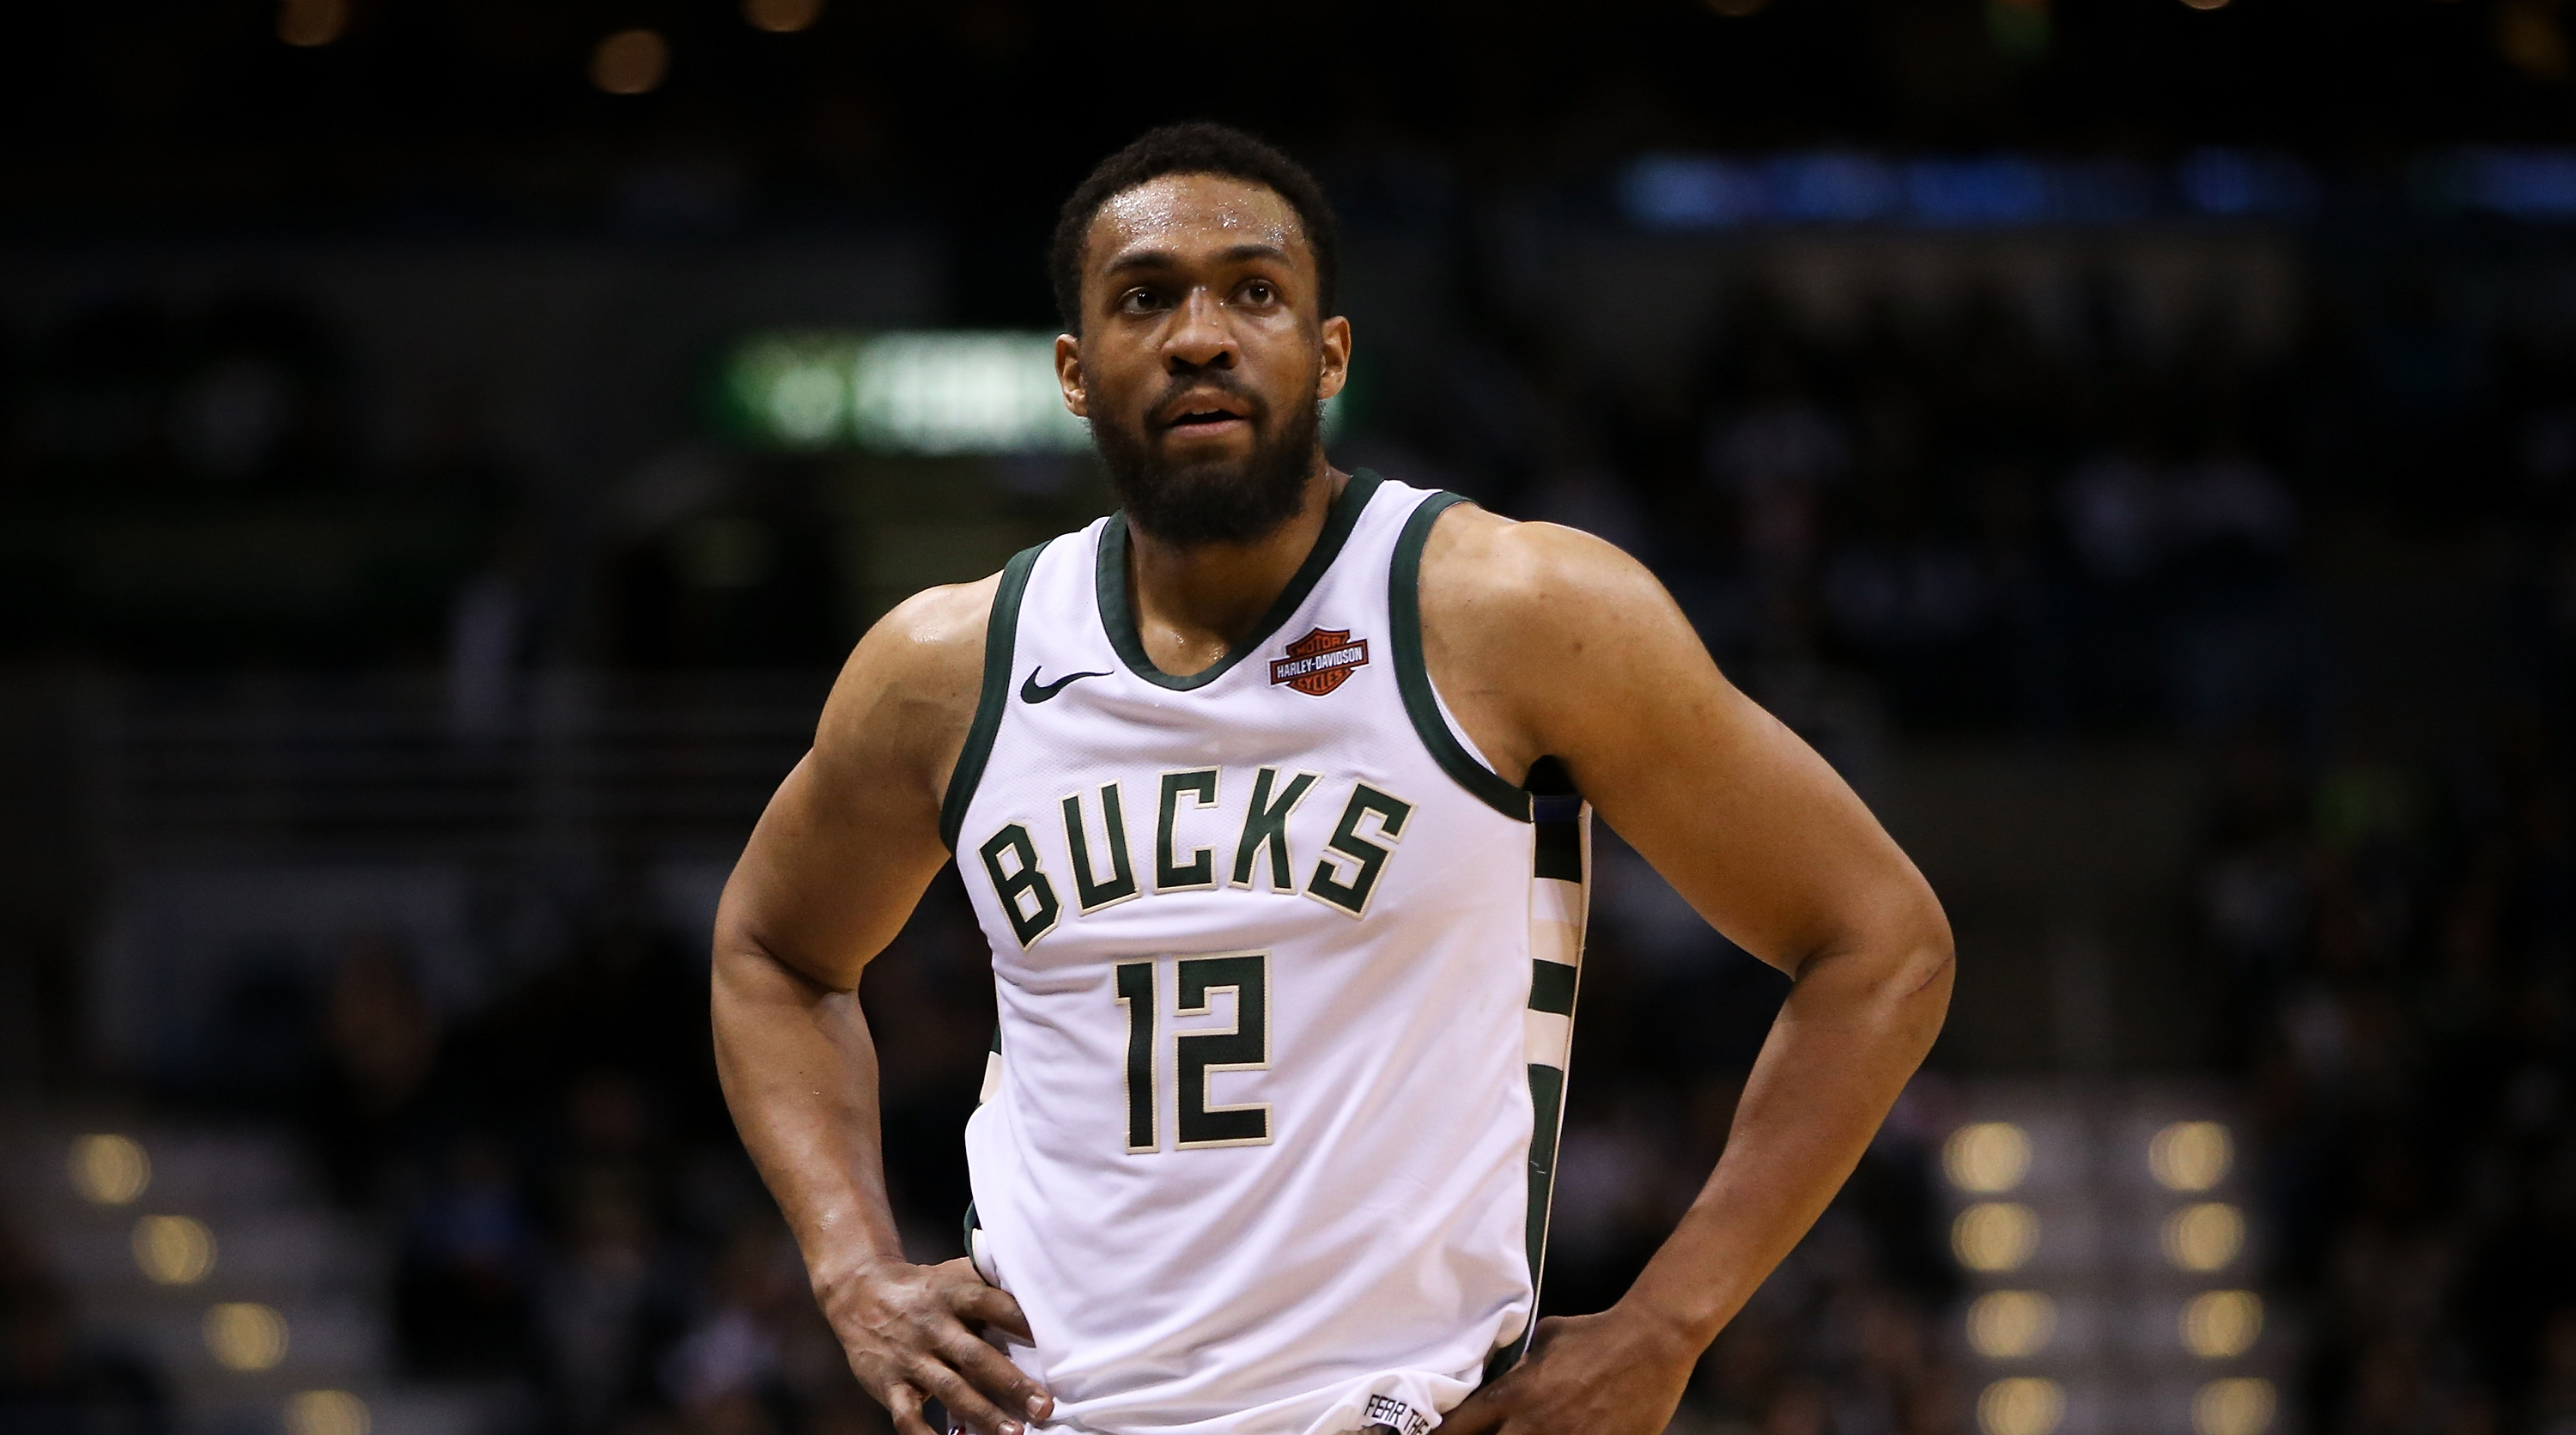 Jabari Parker To The Bulls Could Be A Nice Addition Jabari Parker Shooting